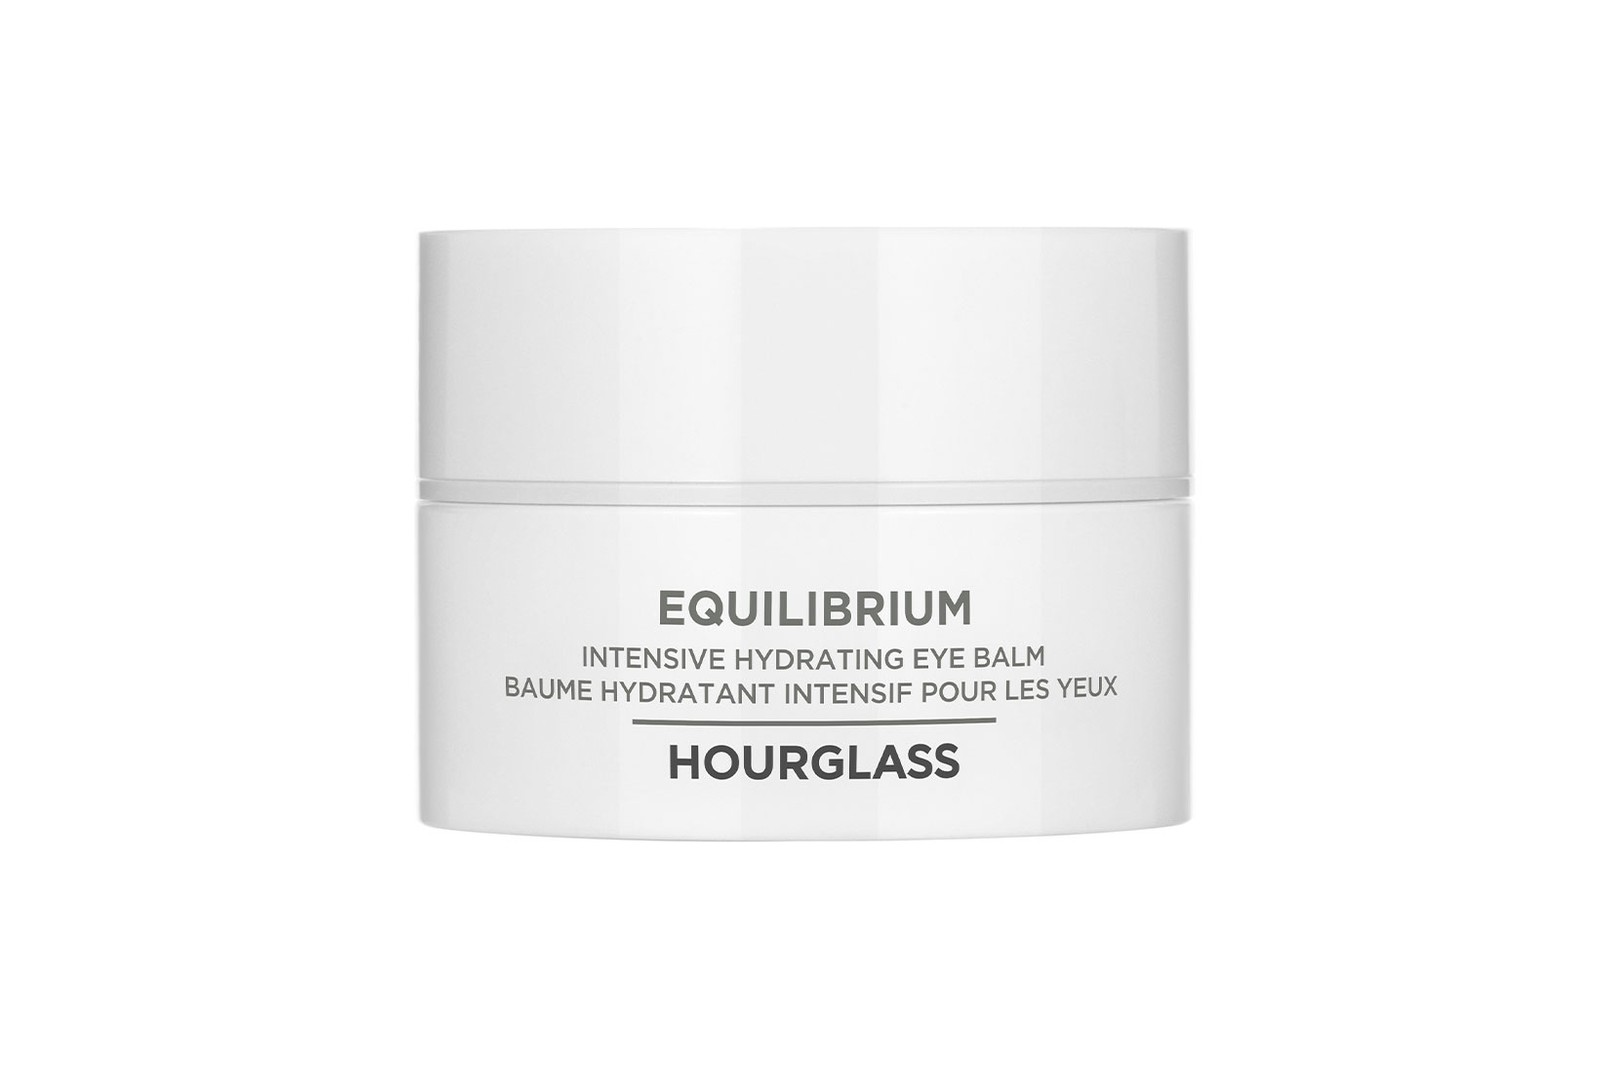 hourglass cosmetics equilibrium skincare collection cleansers eye creams balms sunscreen